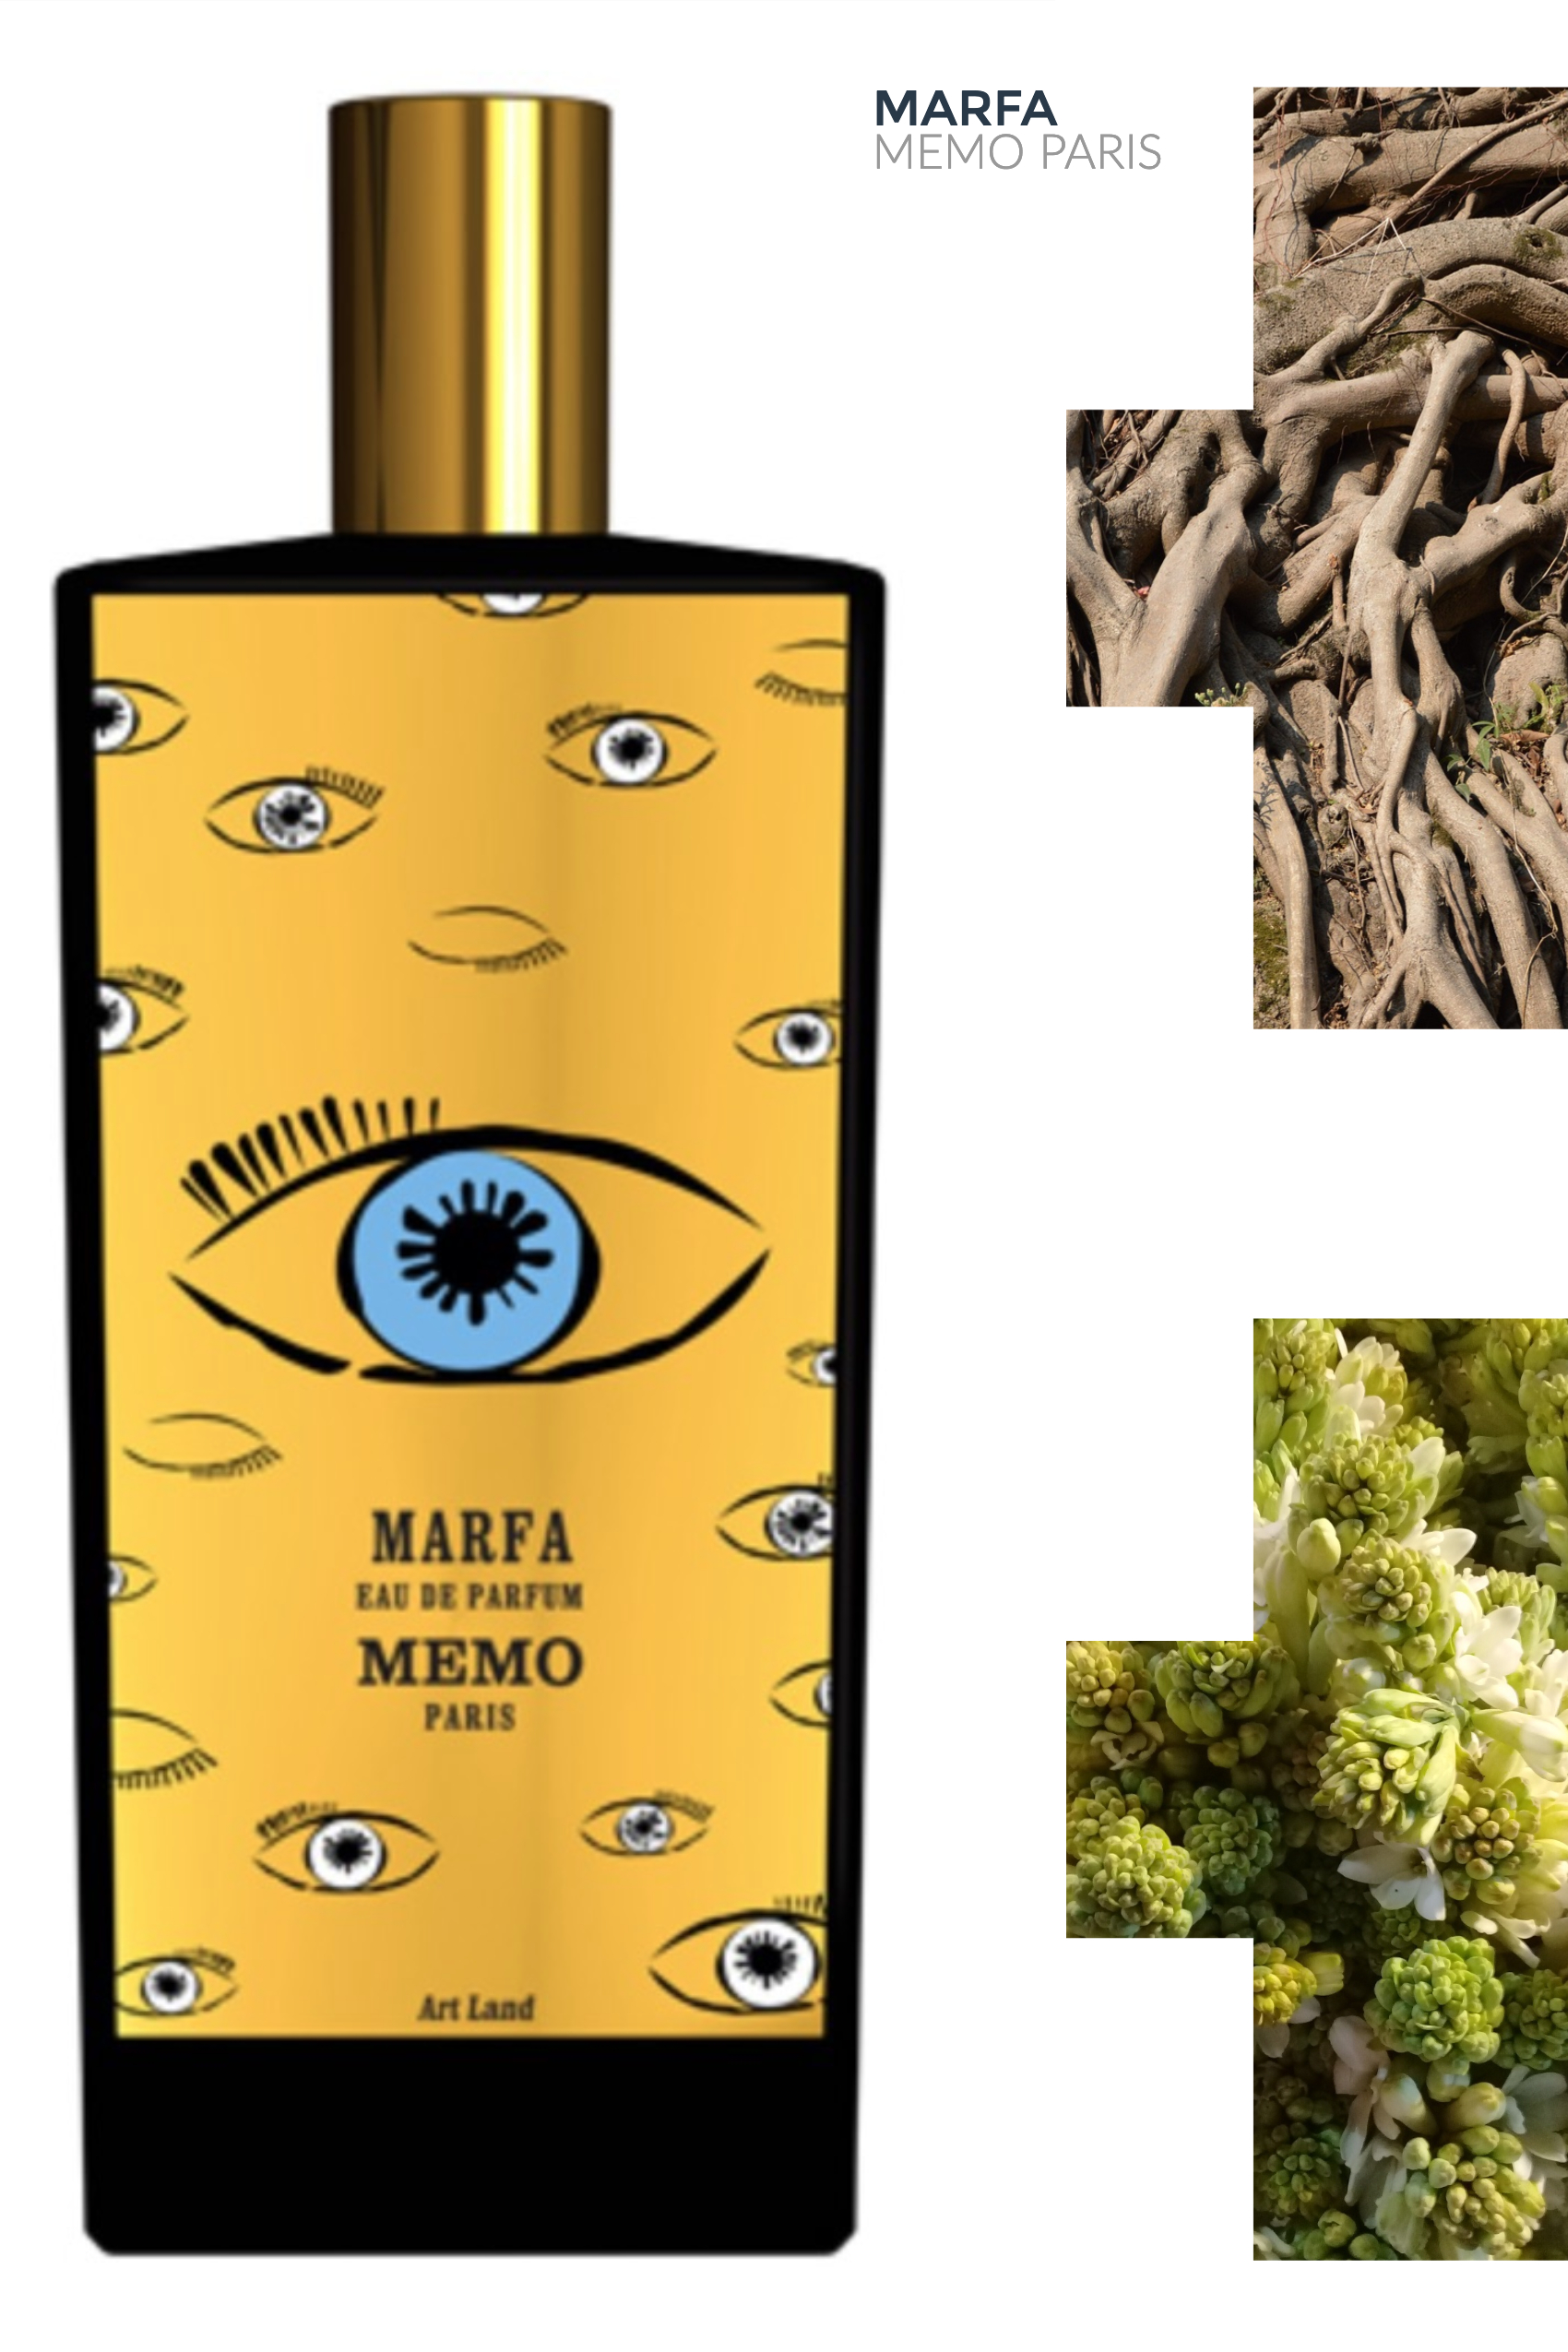 7 Unisex Perfumes, Marfa, Memo Paris, cause and yvette